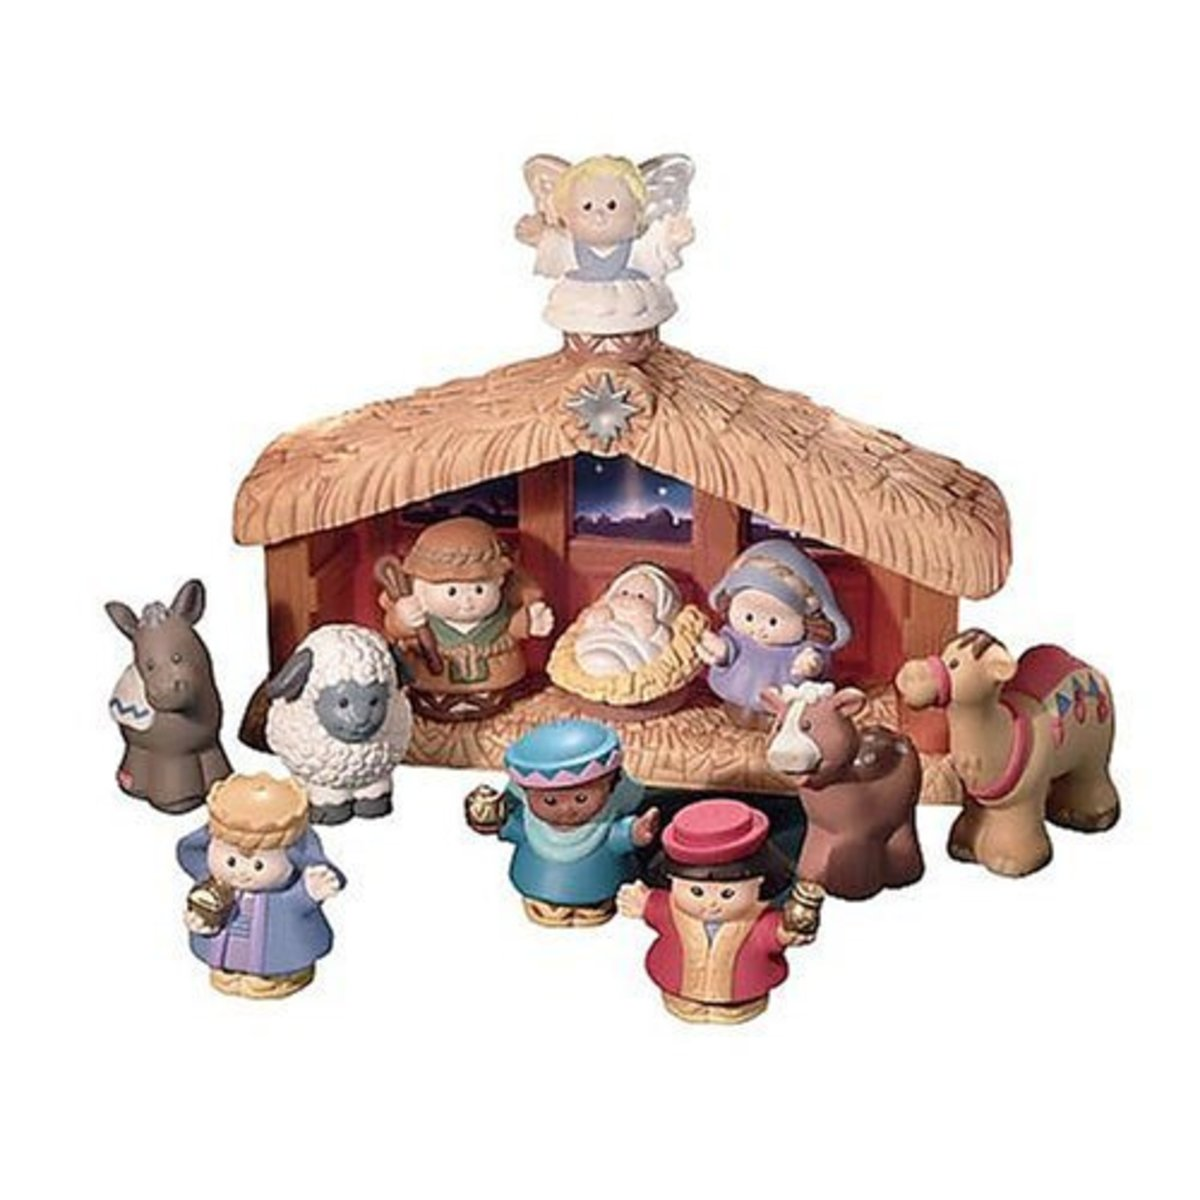 The Fisher Price Nativity features Little People dressed in old world clothing. This durable set is made for little hands to hold.